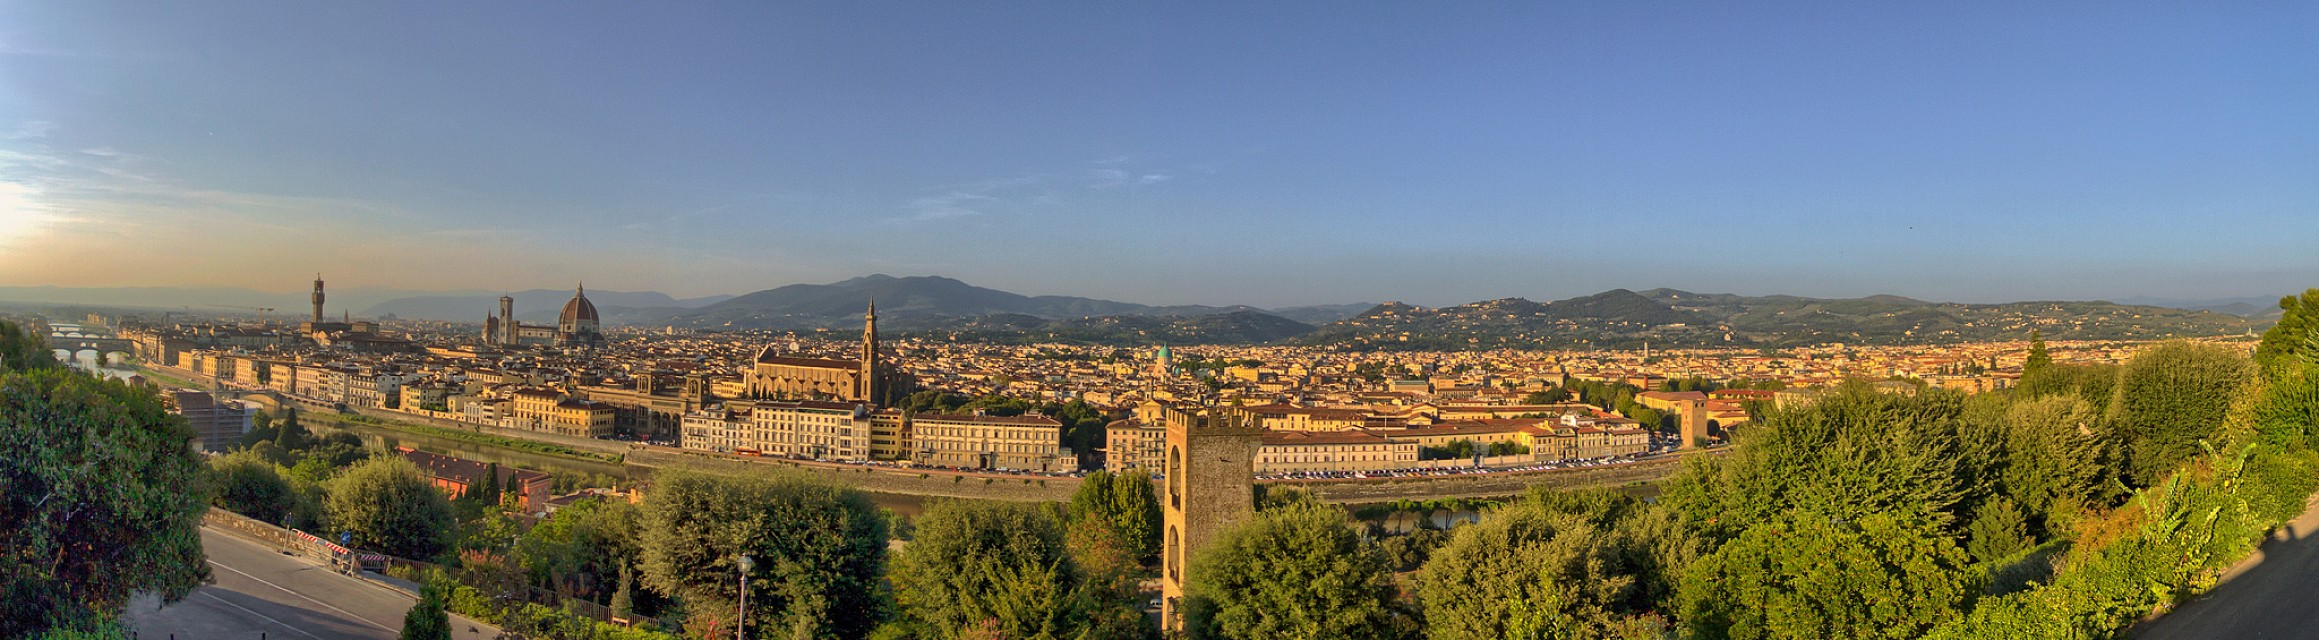 View from the